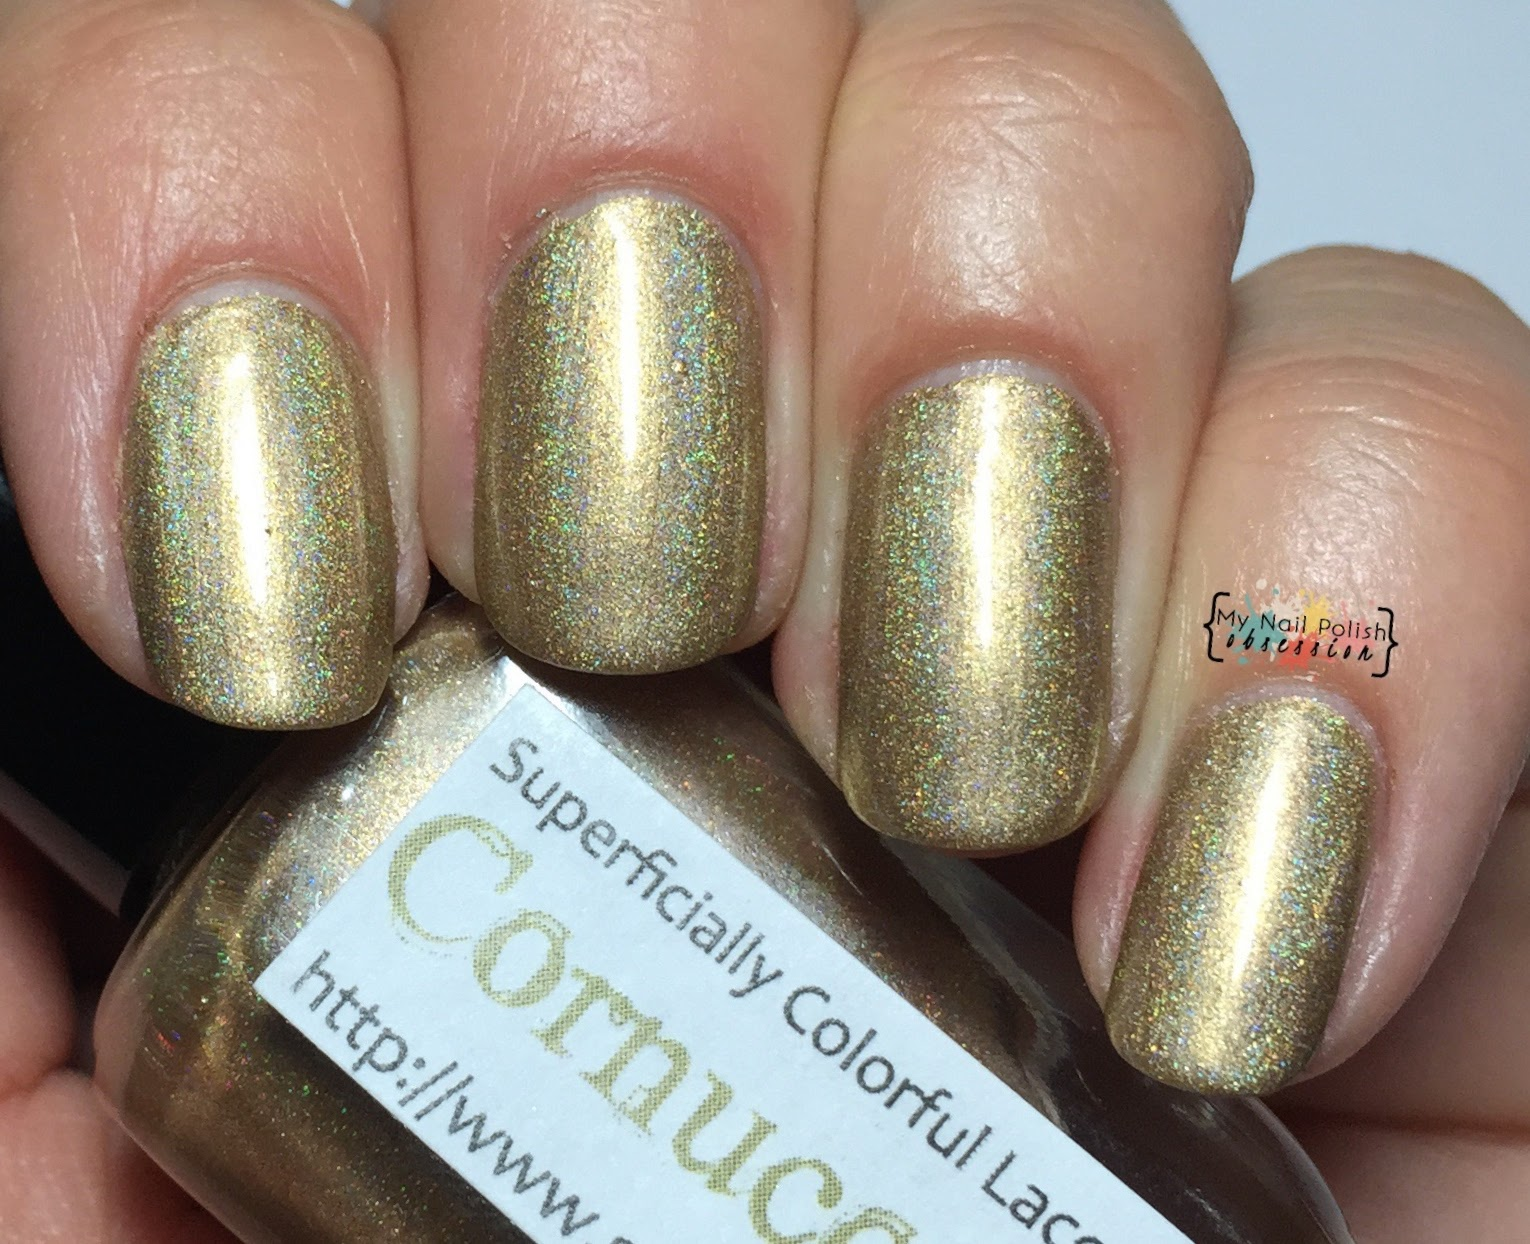 Superficially Colorful Lacquer Cornucopia